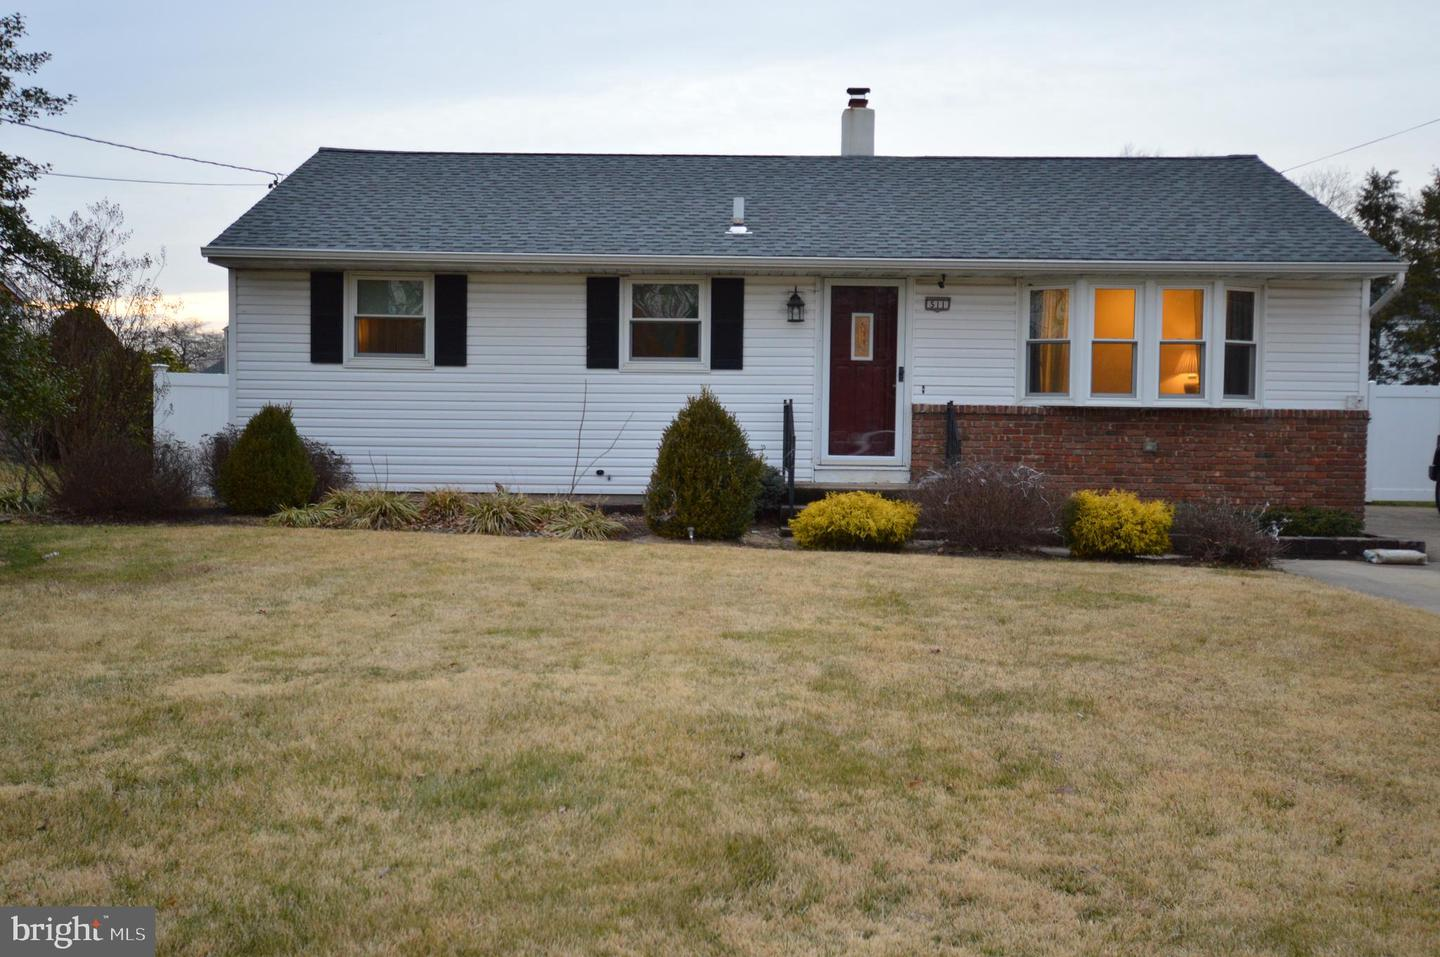 Property for Sale at 511 YARDVILLE HAMILTON SQUARE Road Hamilton, New Jersey 08691 United States